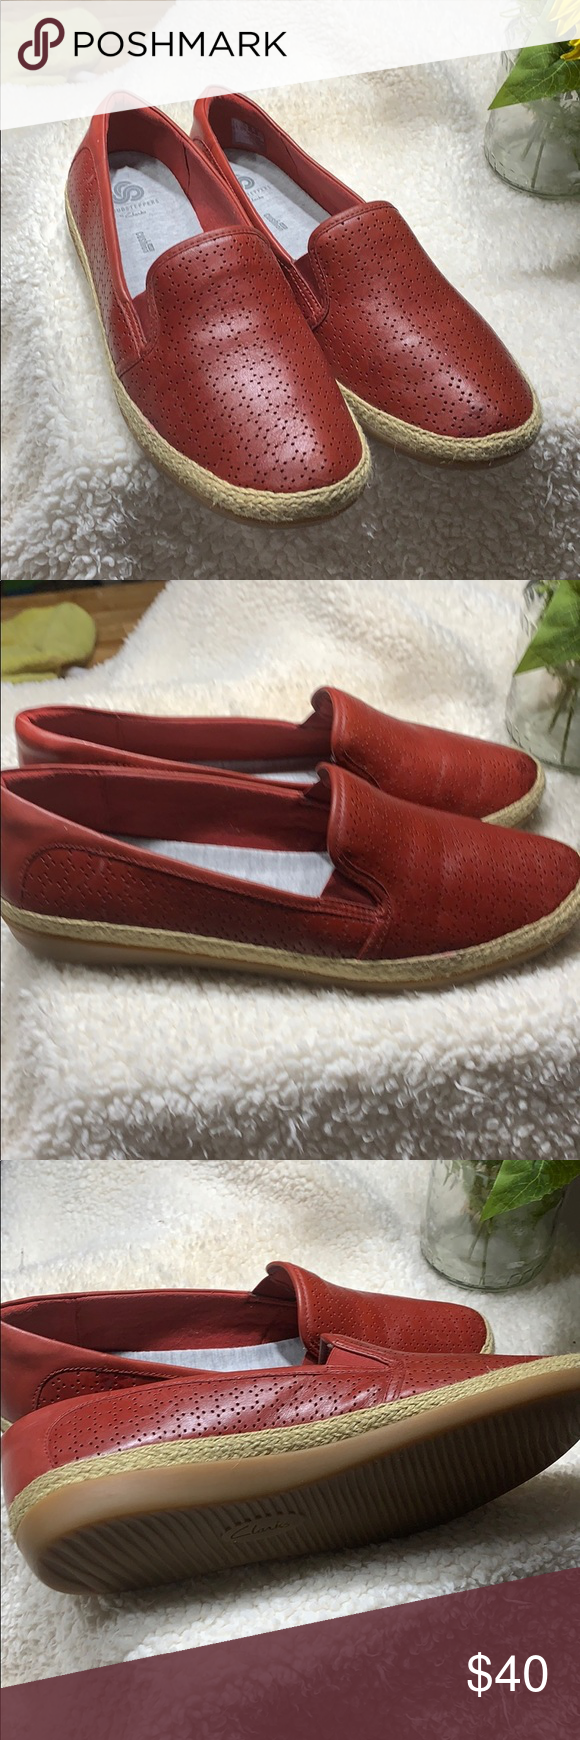 Clark's red loafers in 2020 | Red